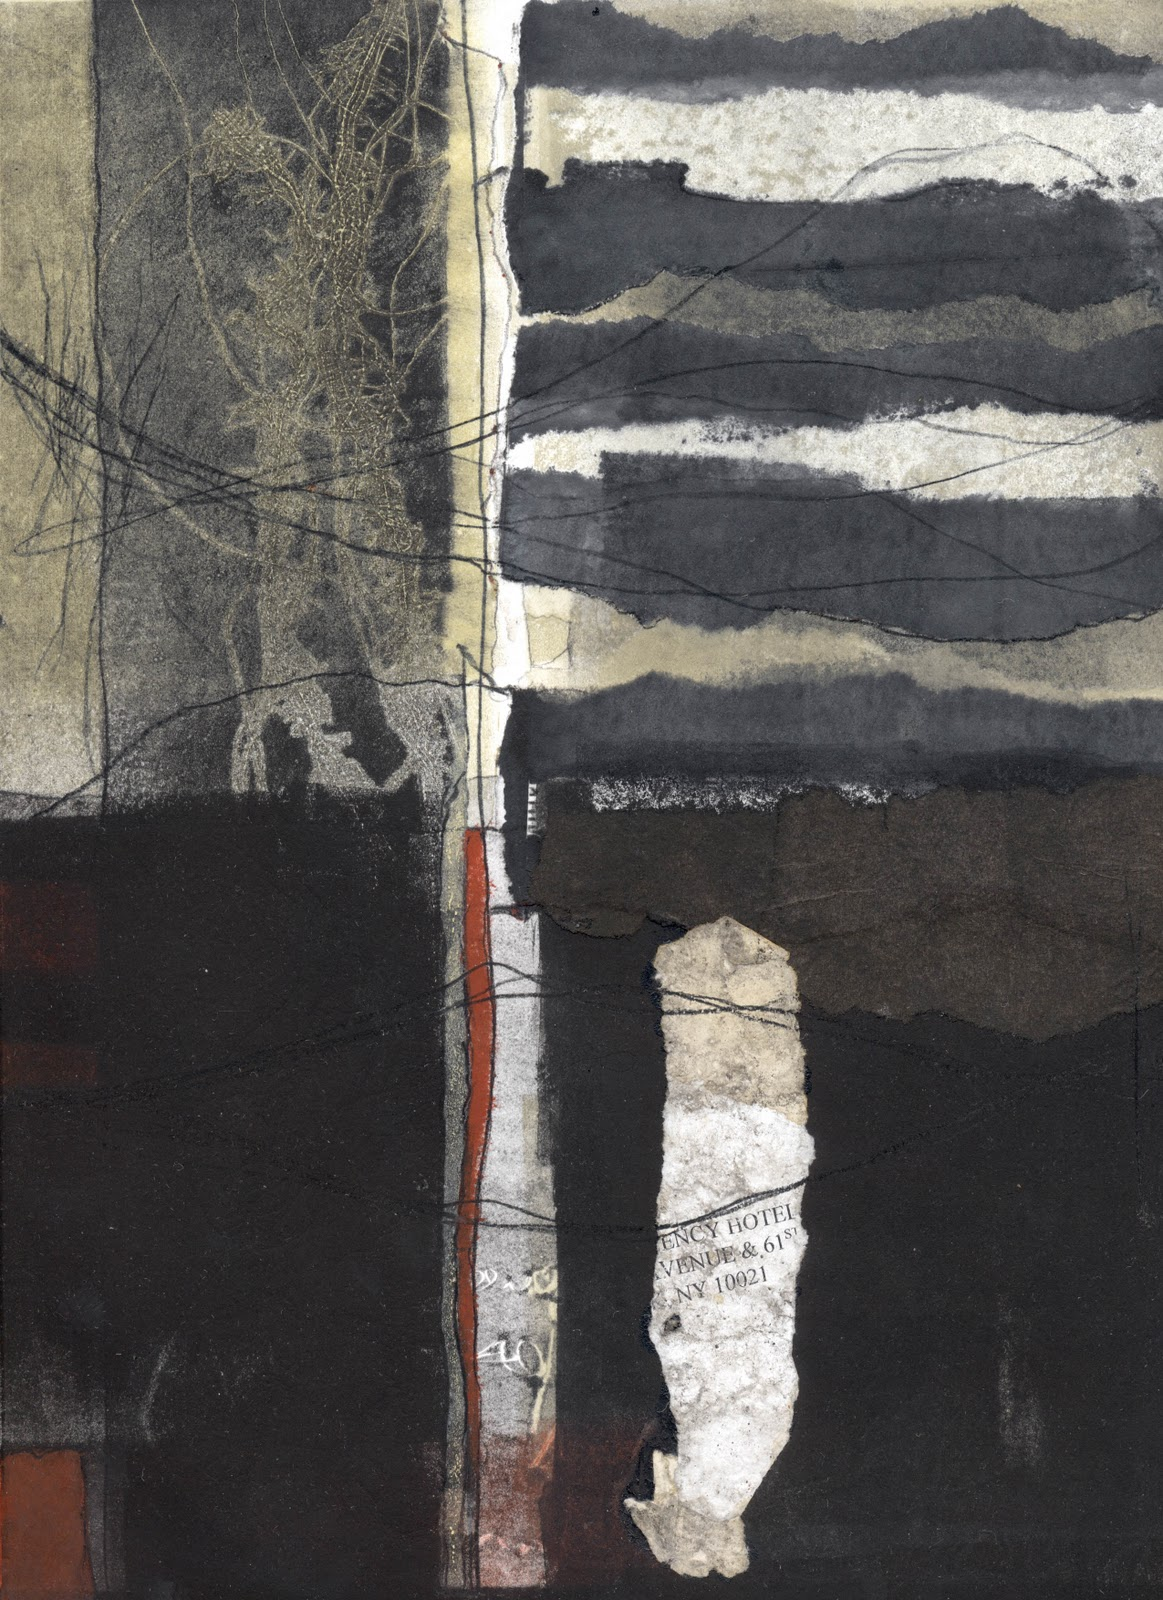 Susan Hurrell Fieldes 38NY1 From The Series Layers Of Her 2011 Monoprint